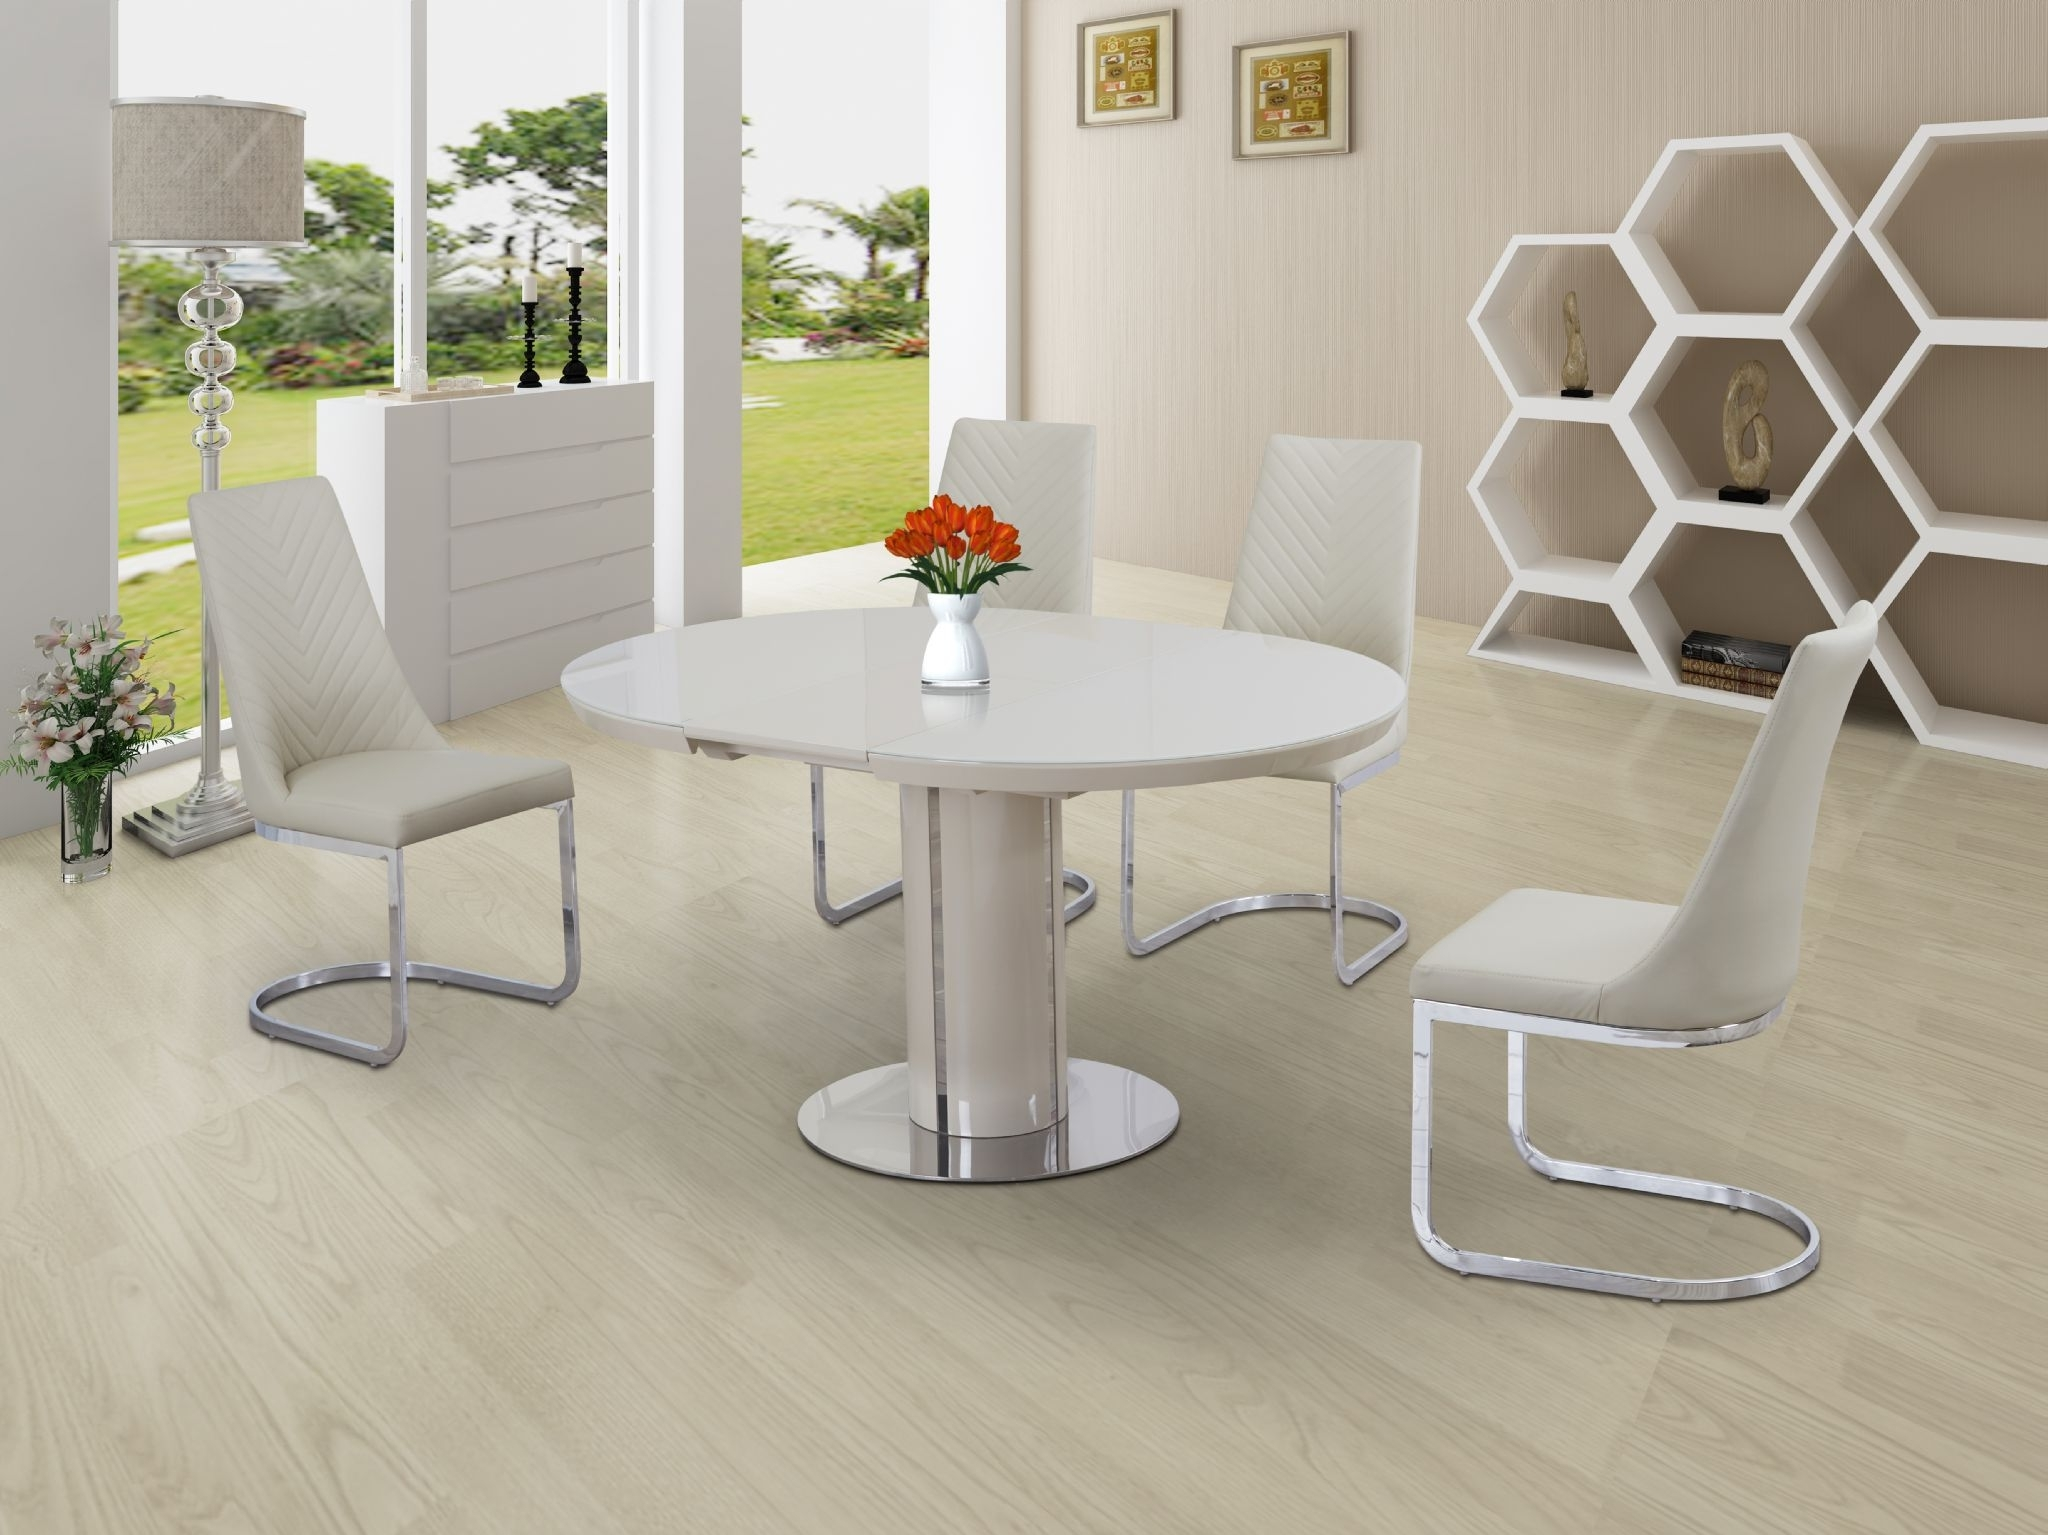 Eclipse Round Oval Gloss & Glass Extending 110 To 145 Cm Dining throughout Trendy Round Extending Dining Tables